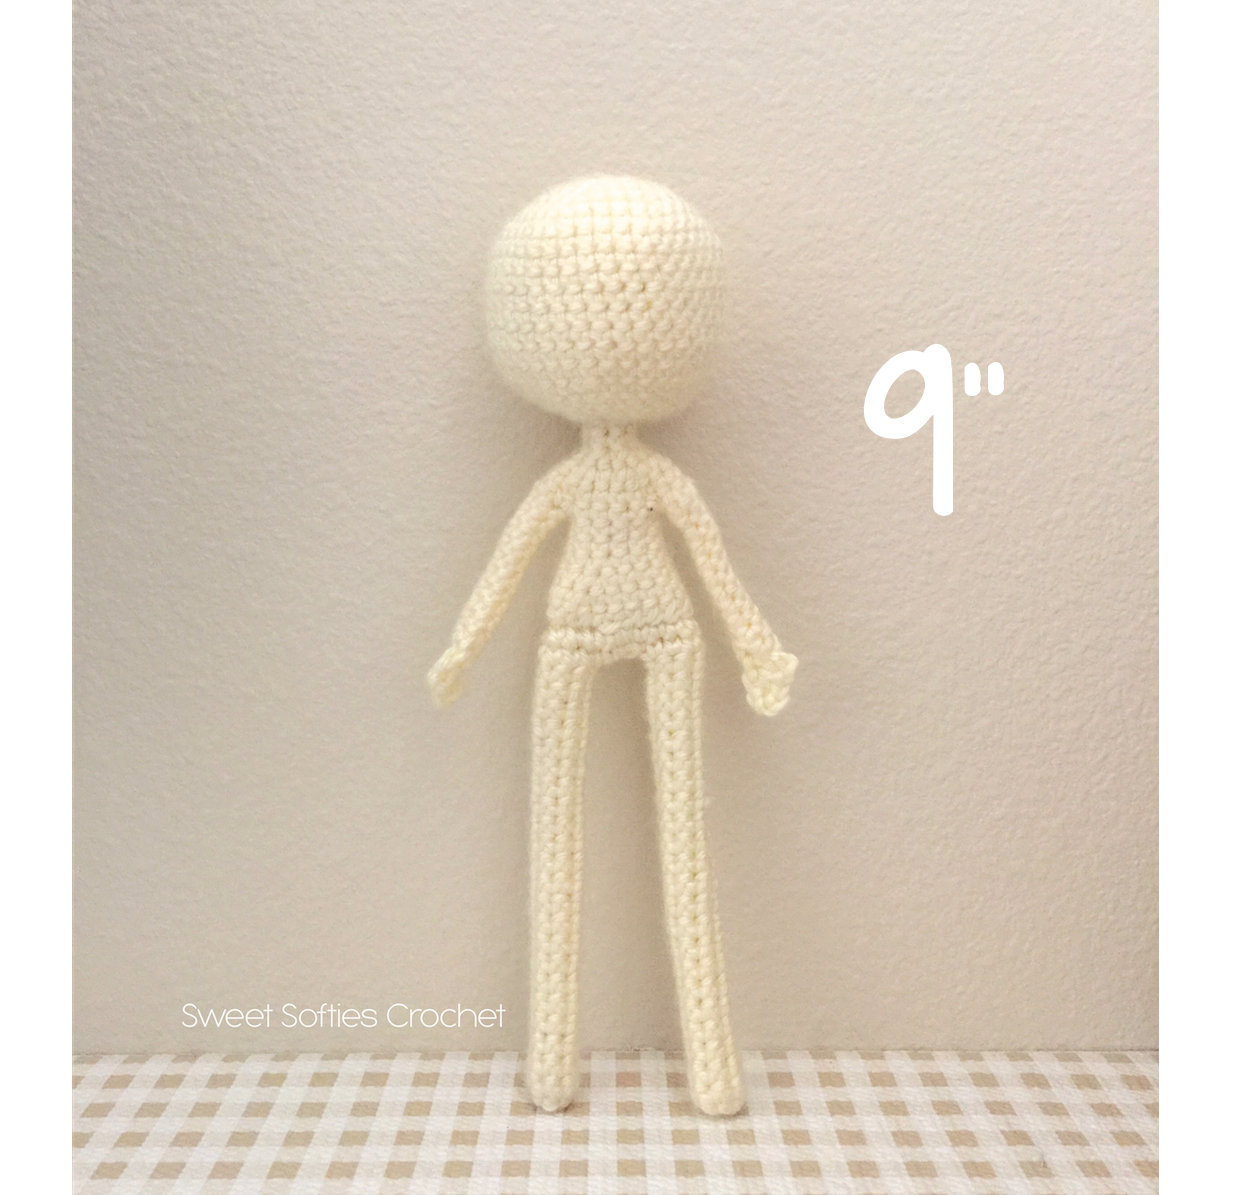 "Slender Doll Base (9""), Human Body"